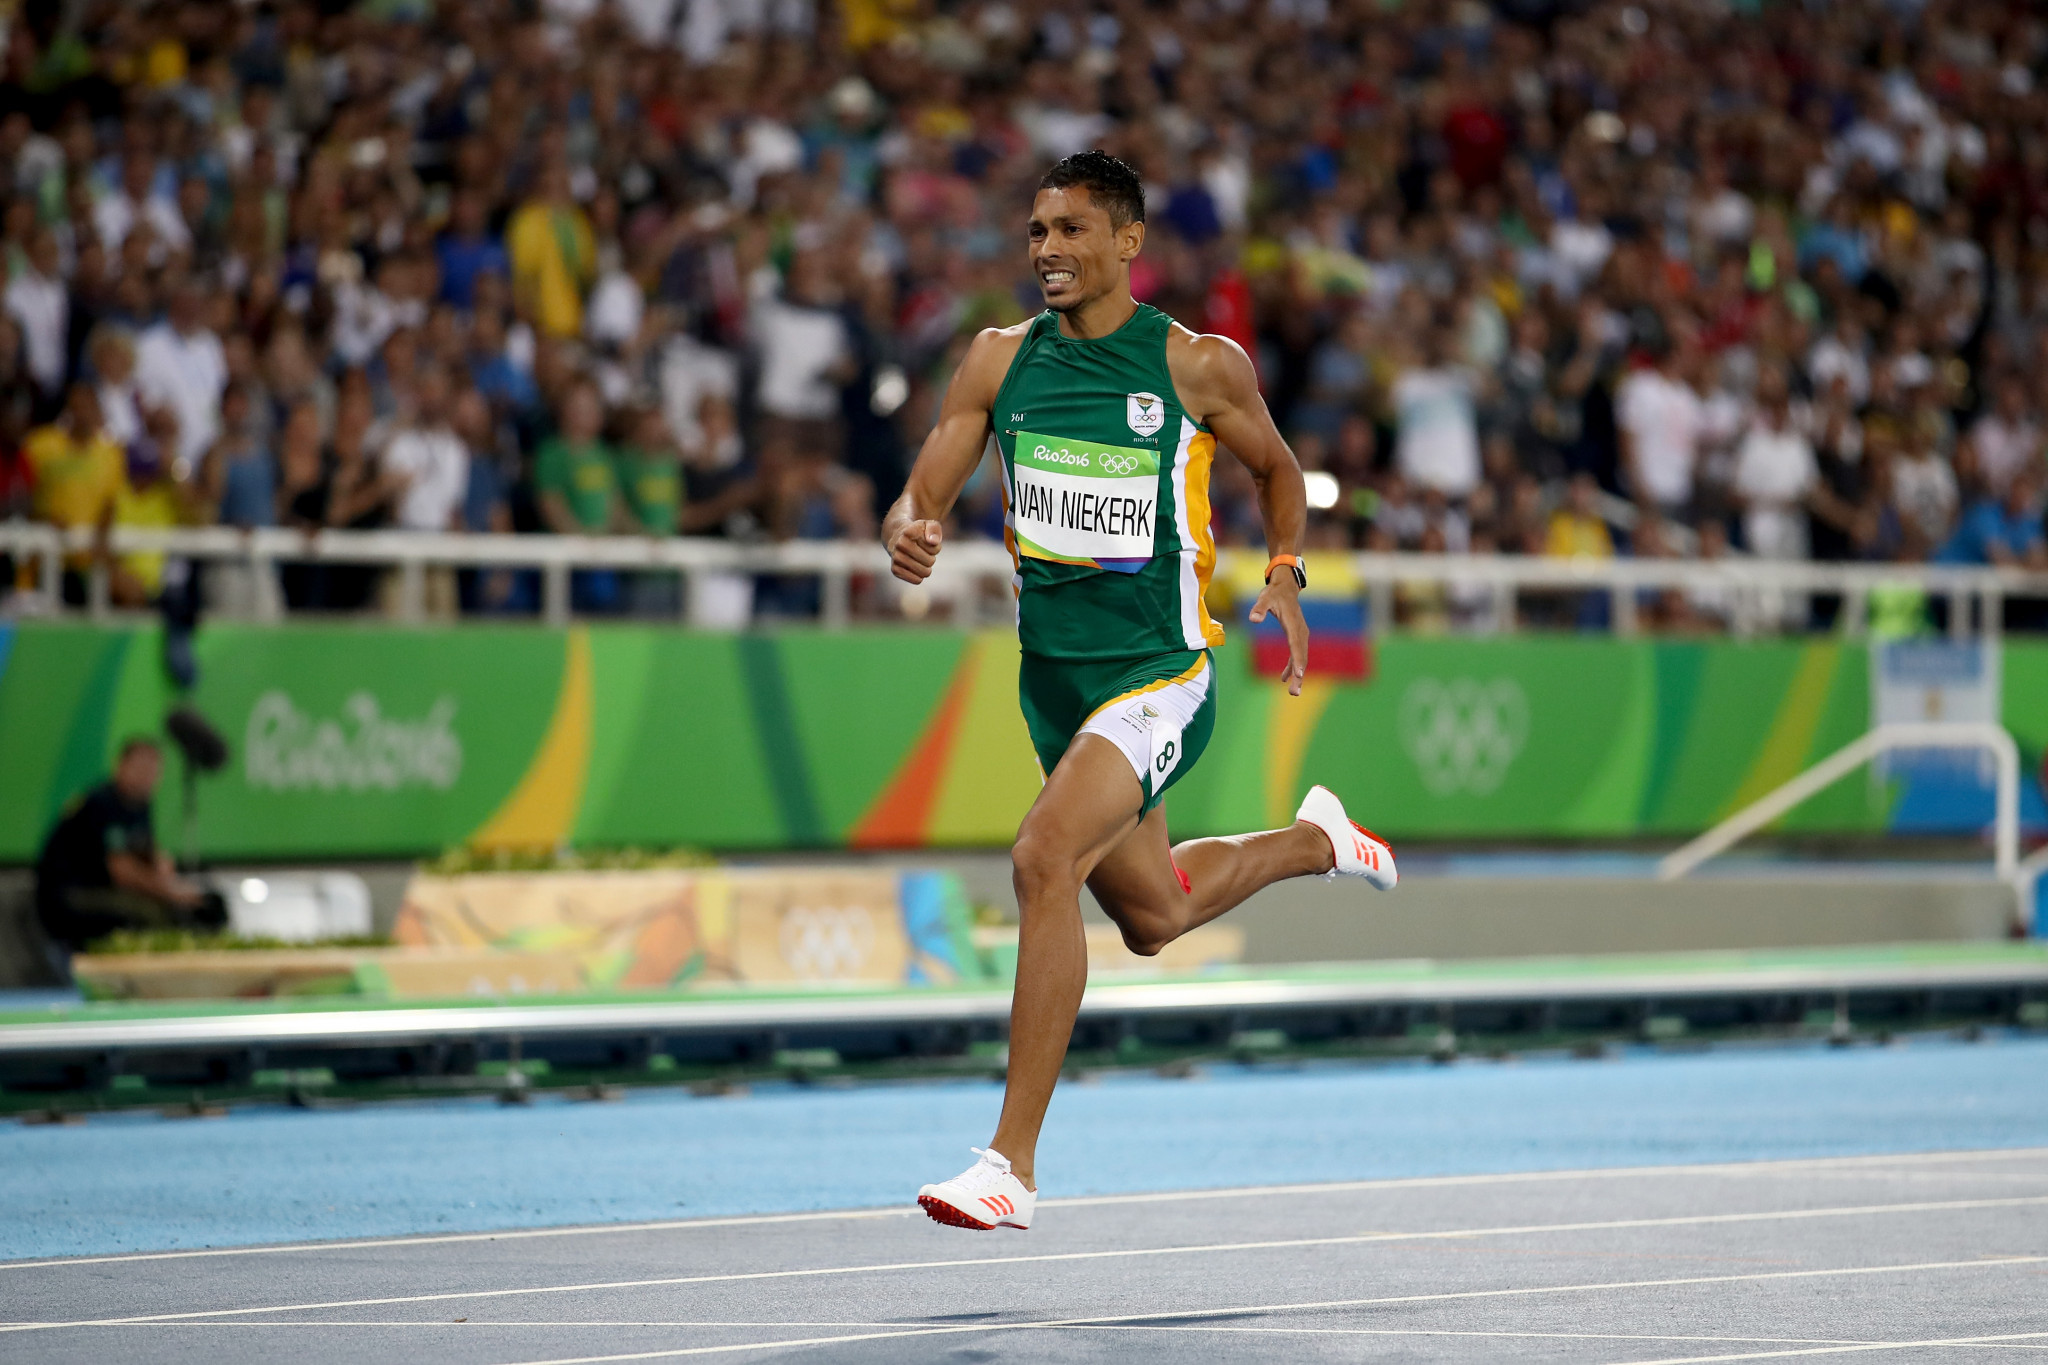 Wayde van Niekerk set a new world record as he won the men's 400m at the Rio 2016 Olympic Games ©Getty Images